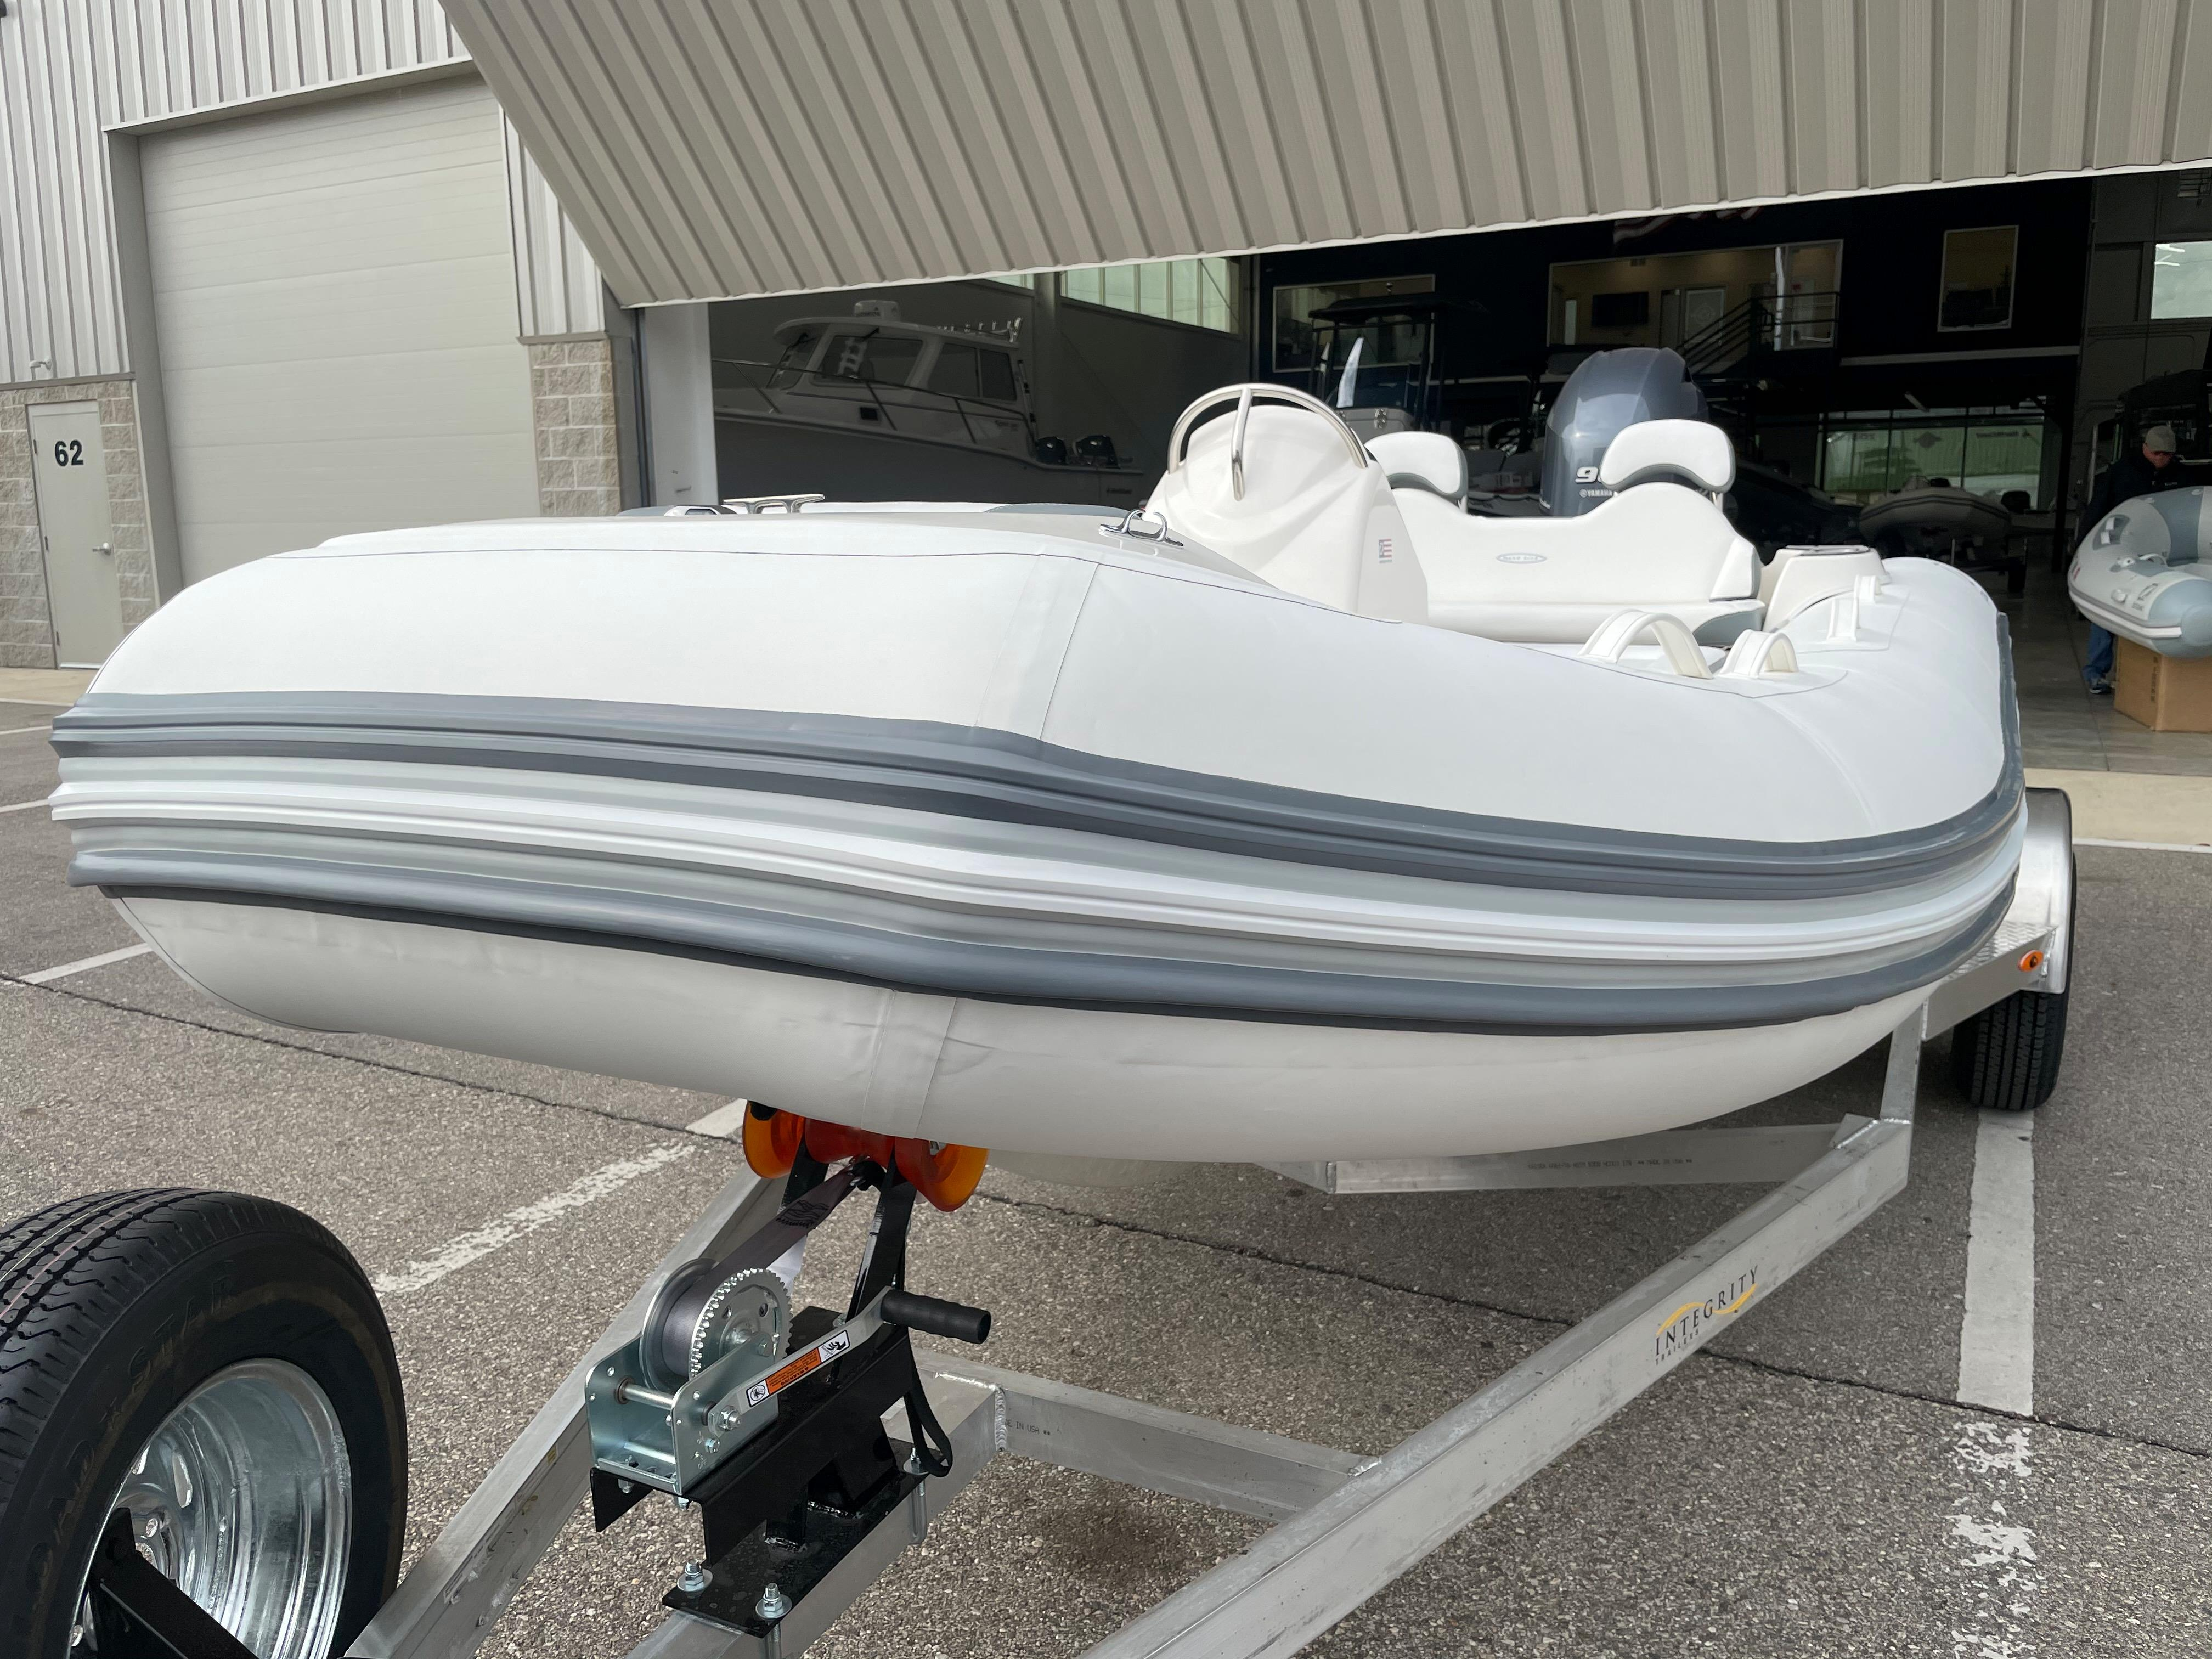 2022 Zodiac Yachtline 490 Deluxe NEO GL Edition 90hp On Order, Image 8